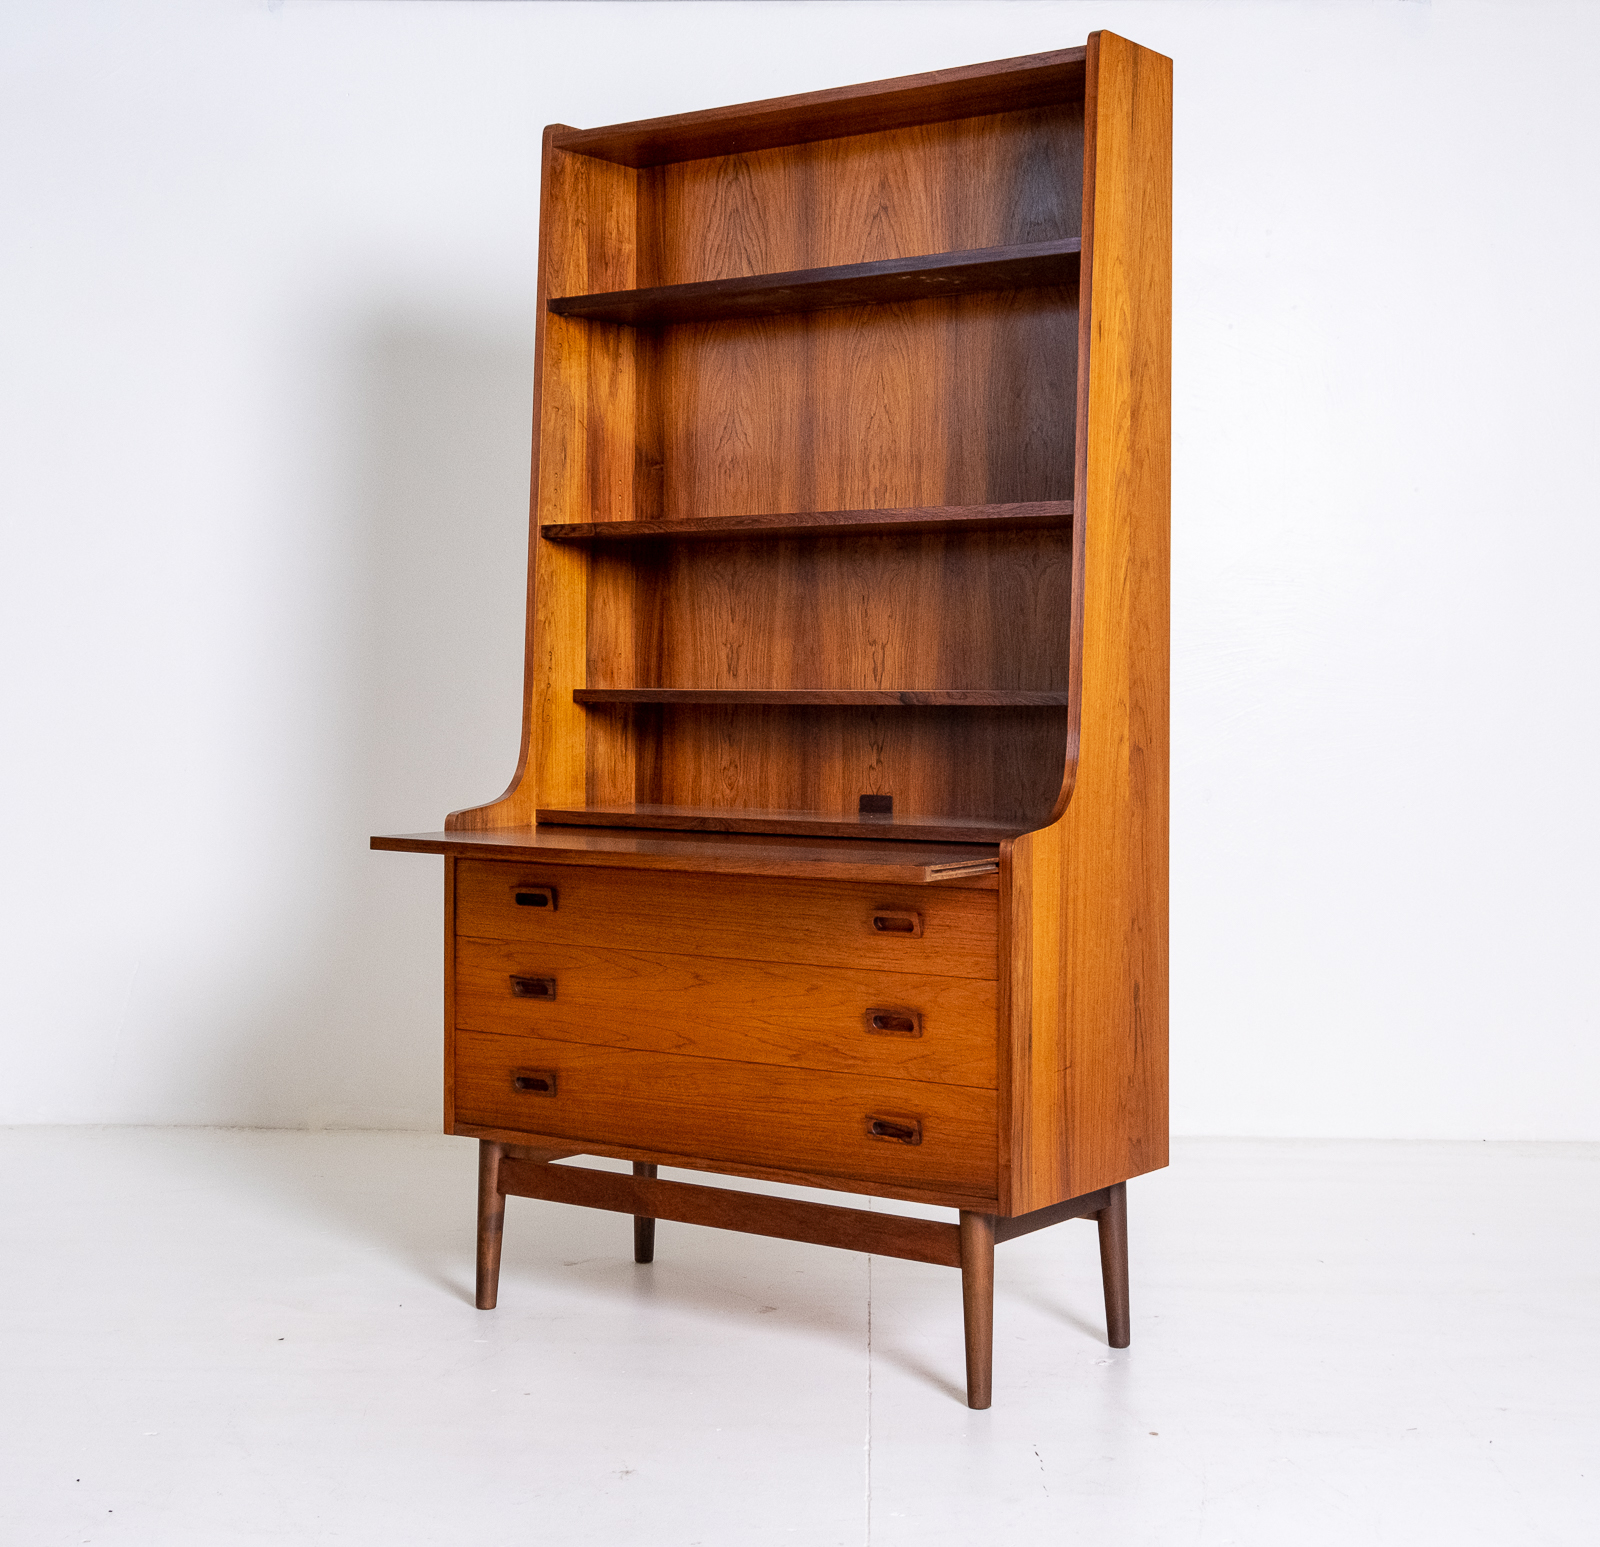 Bookshelf With Drawers In Rosewood, 1960s, Denmark 03